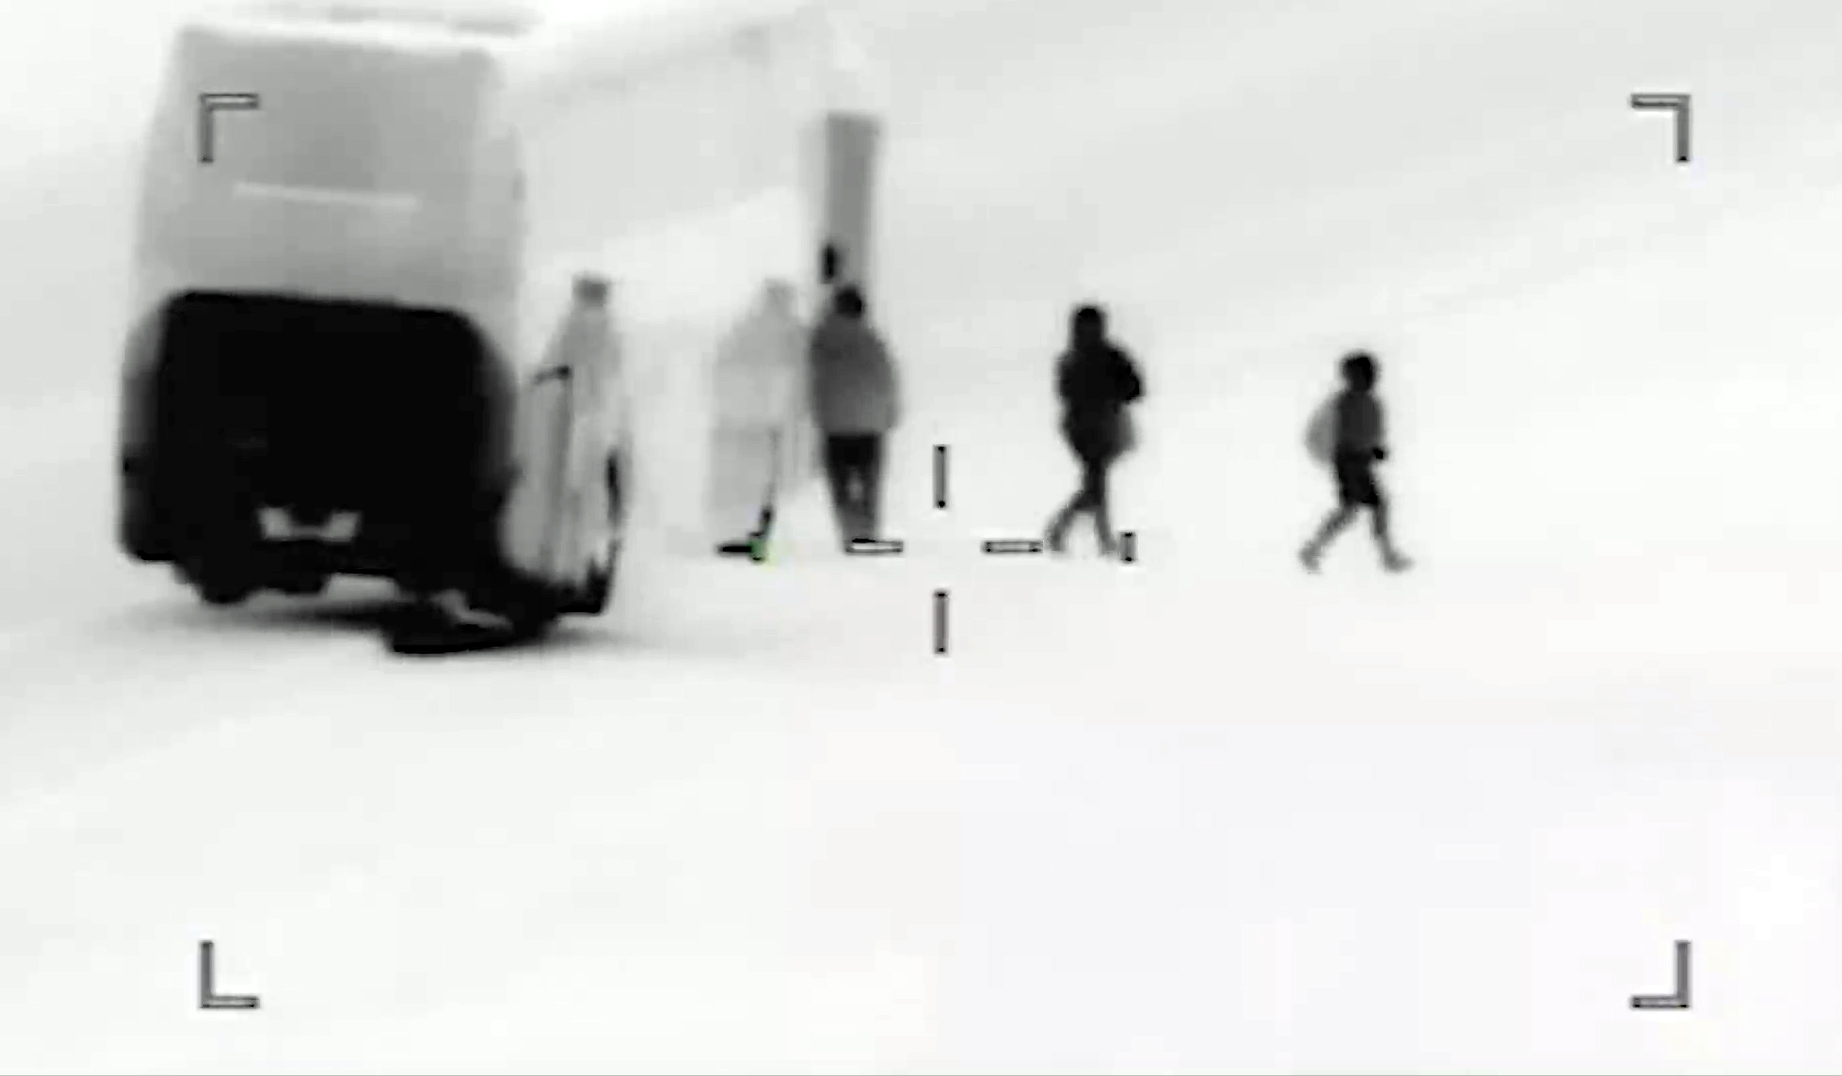 """This frame taken from U.S. surveillance video shows migrants disembarking from a bus in part of what U.S. officials call """"The Conveyor Belt."""" Migrants are dropped off within walking distance of the U.S. border."""